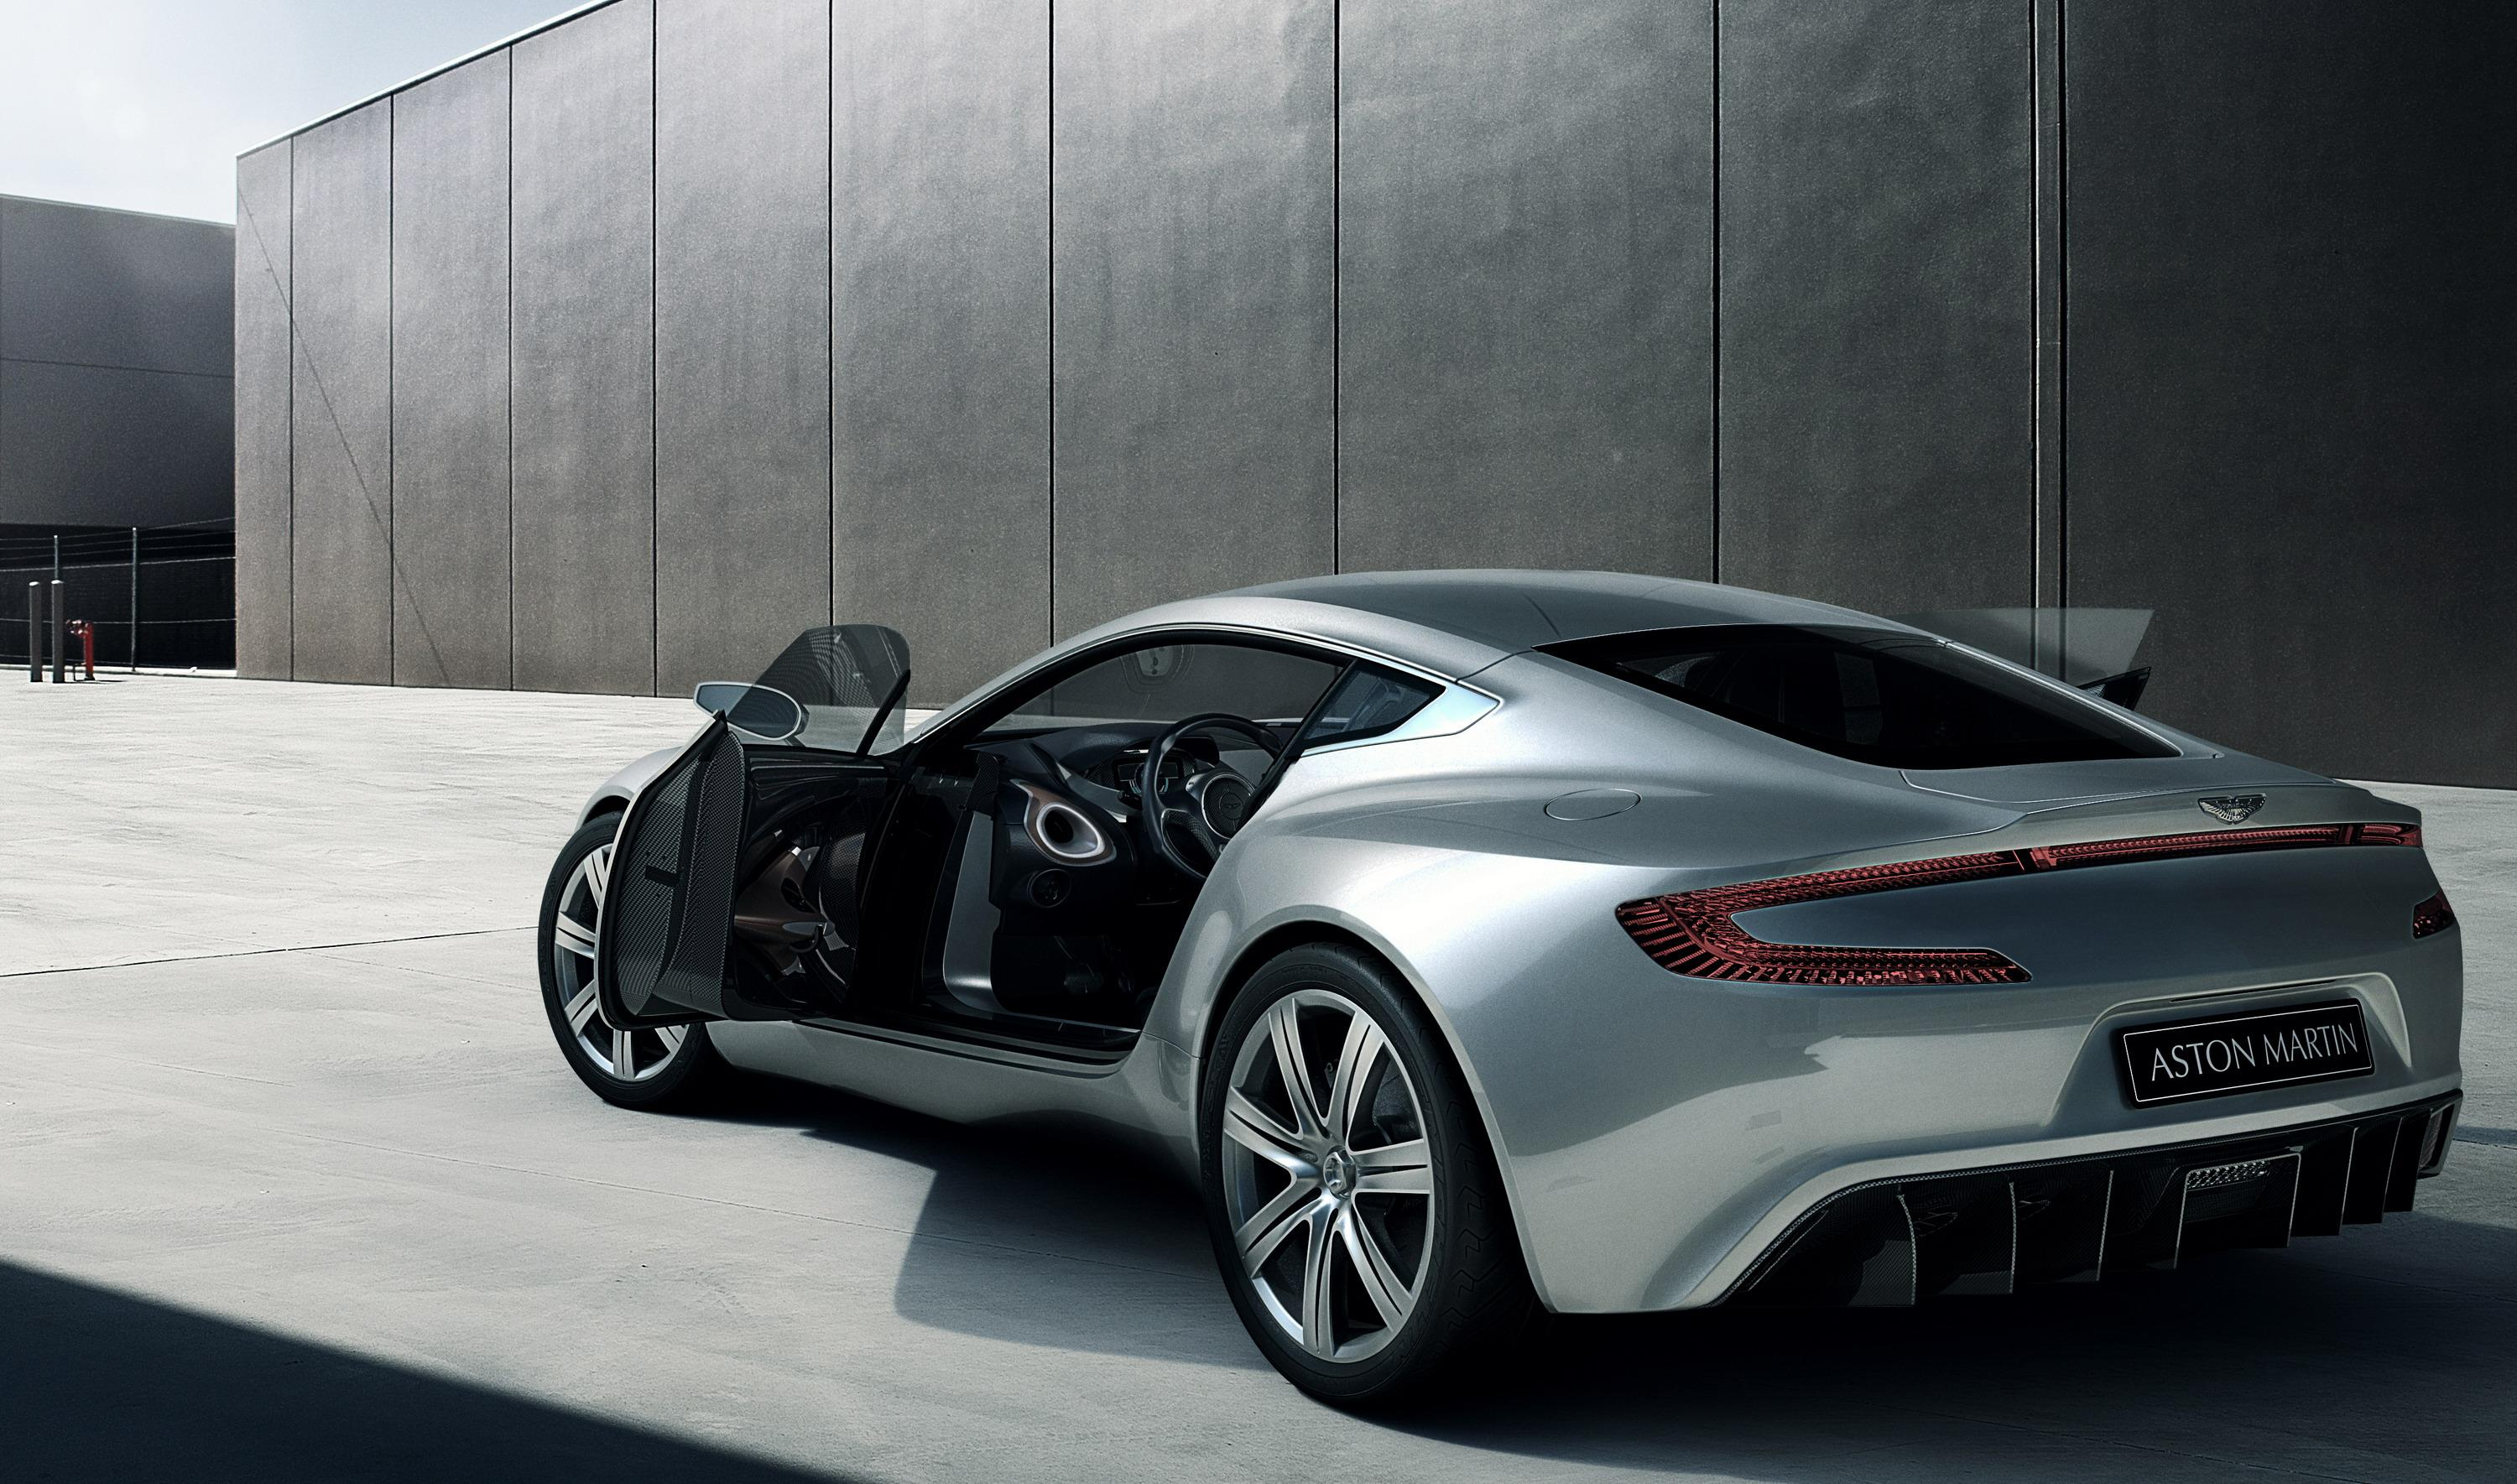 national geographic megafactories features aston martin one-77 in